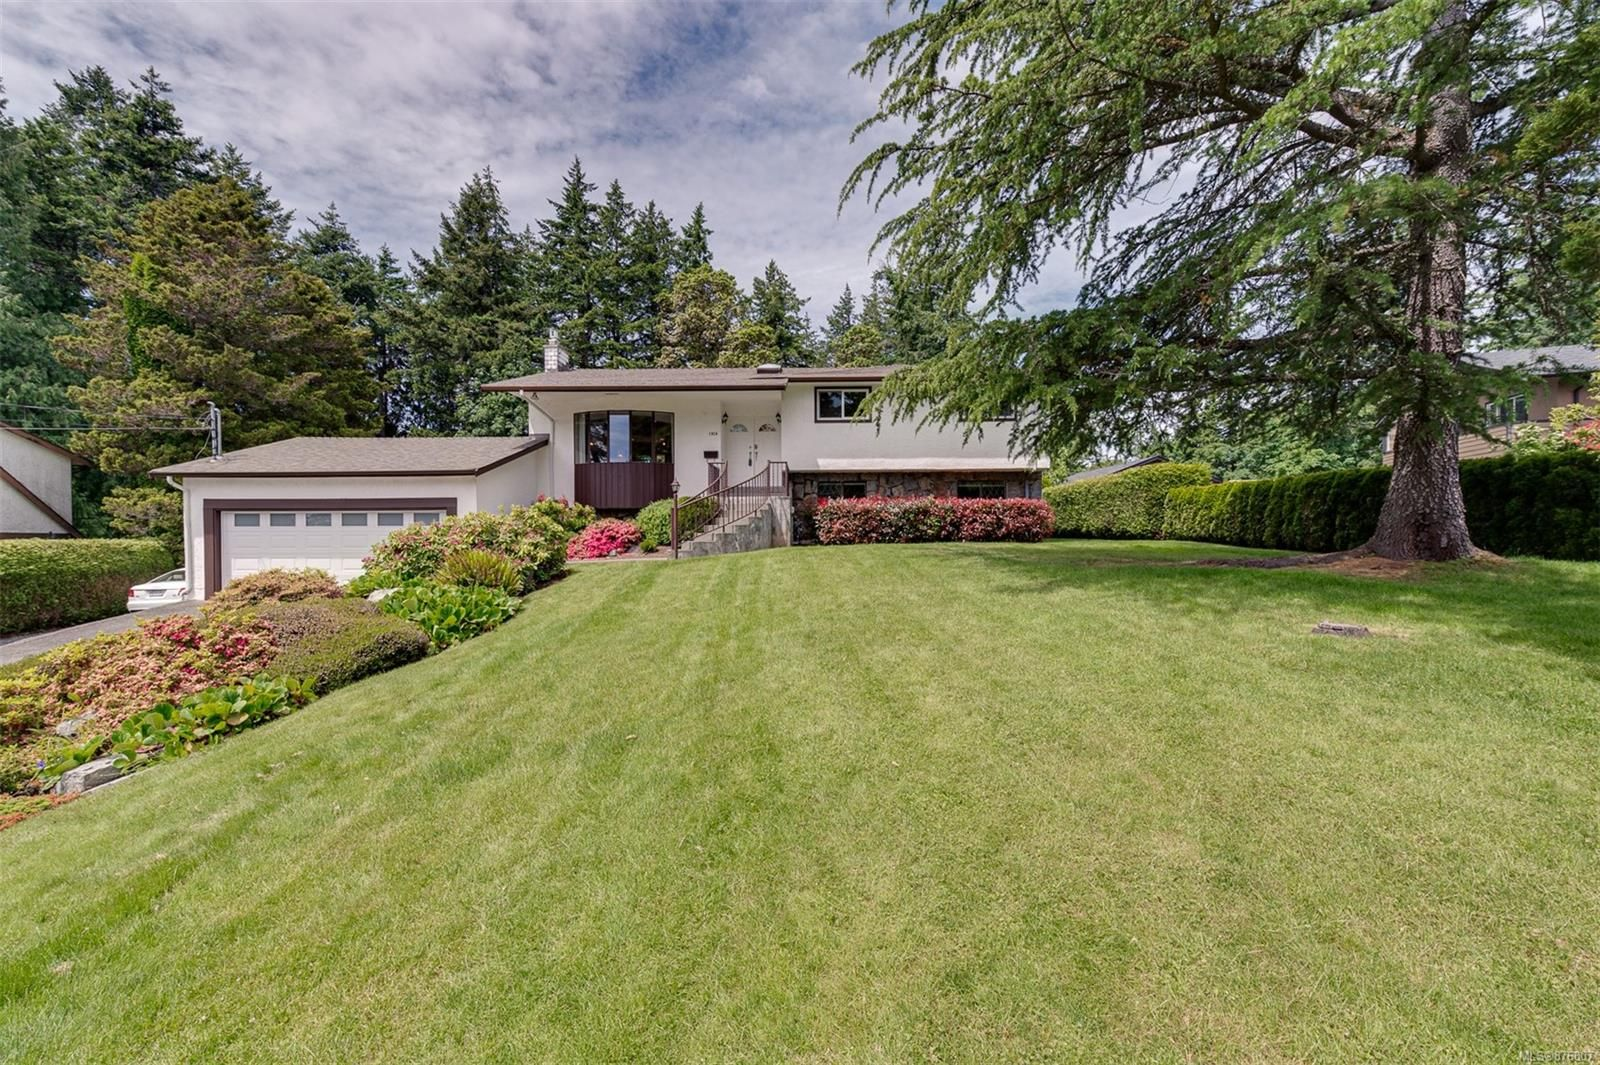 Main Photo: 1956 Sandover Cres in : NS Dean Park House for sale (North Saanich)  : MLS®# 876807